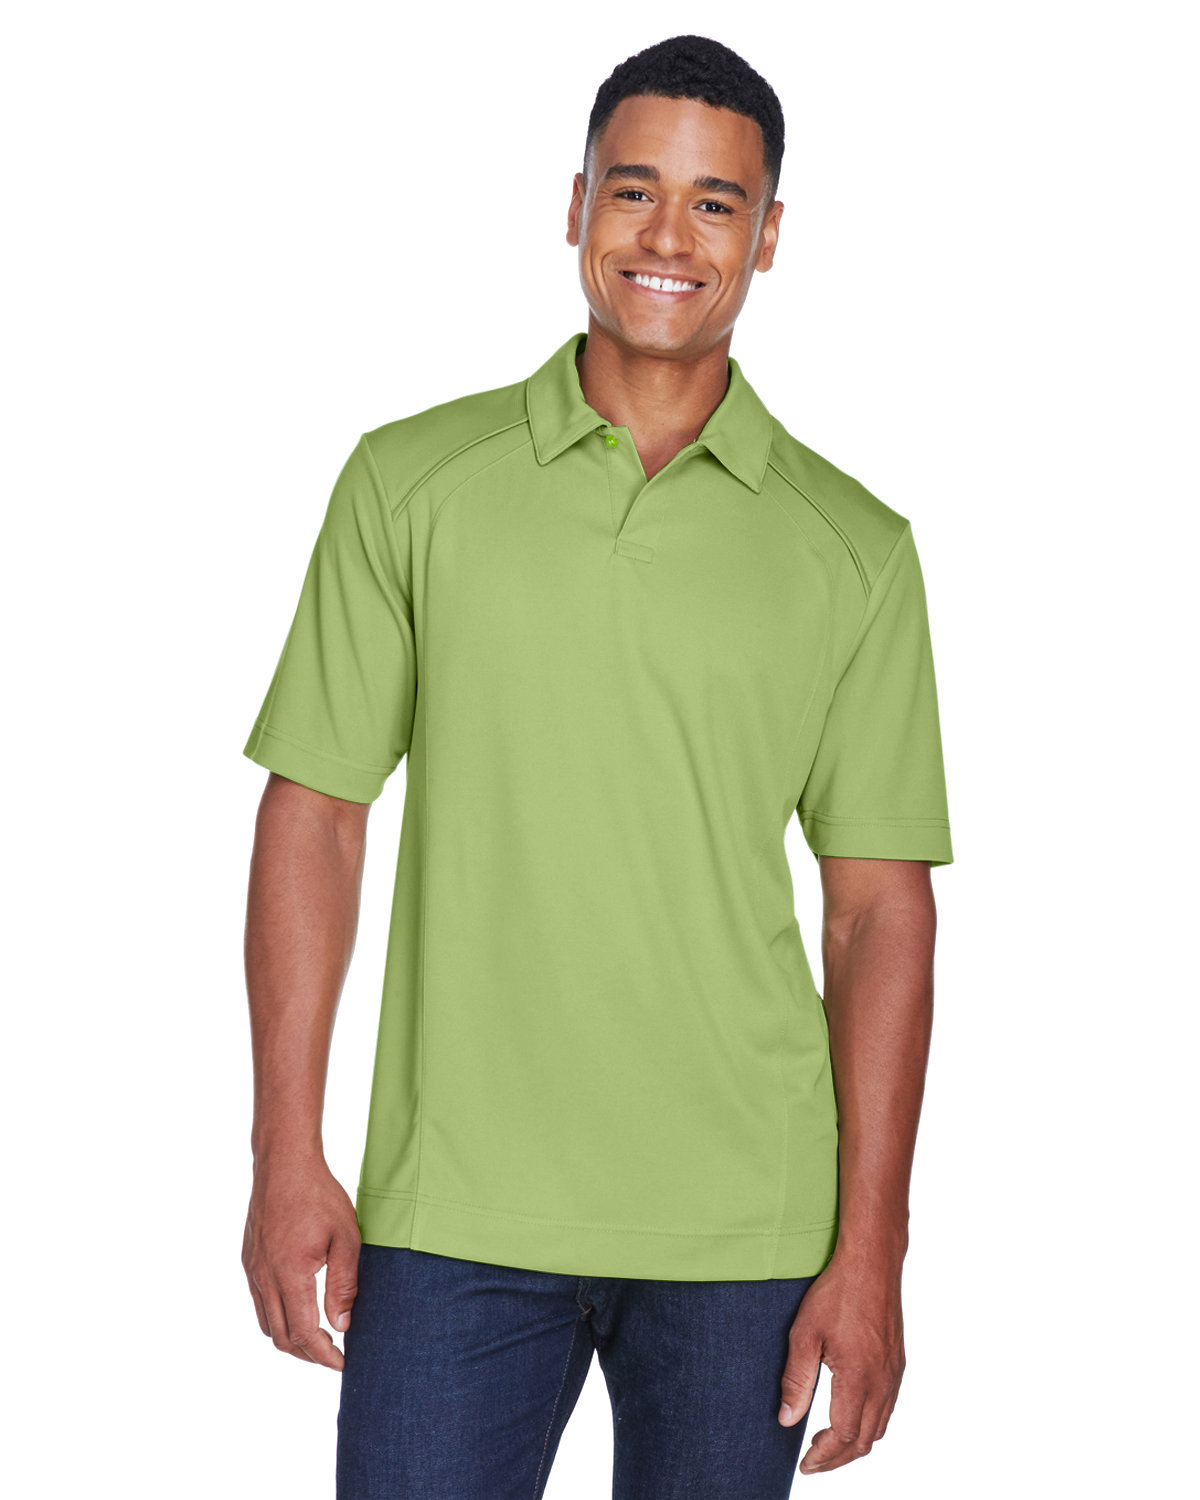 North End Men's Recycled Polyester Performance Piqué Polo CACTUS GREEN